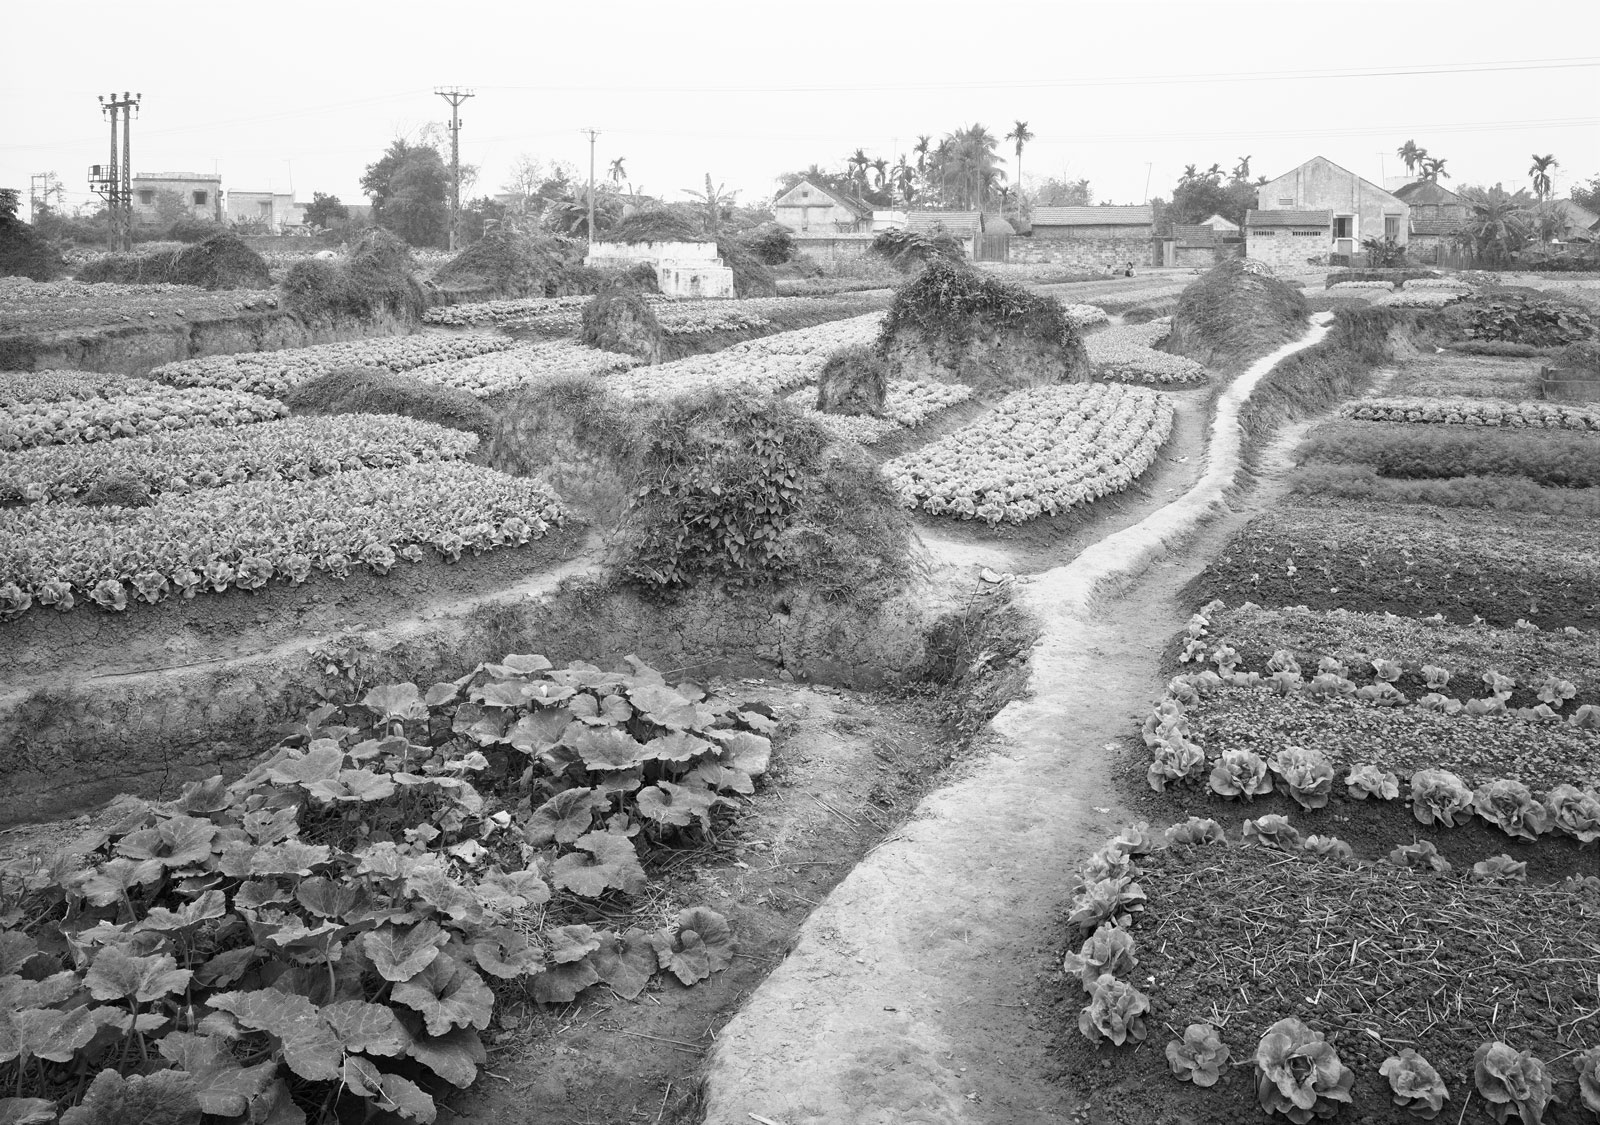 A winding road between fields, in black and white